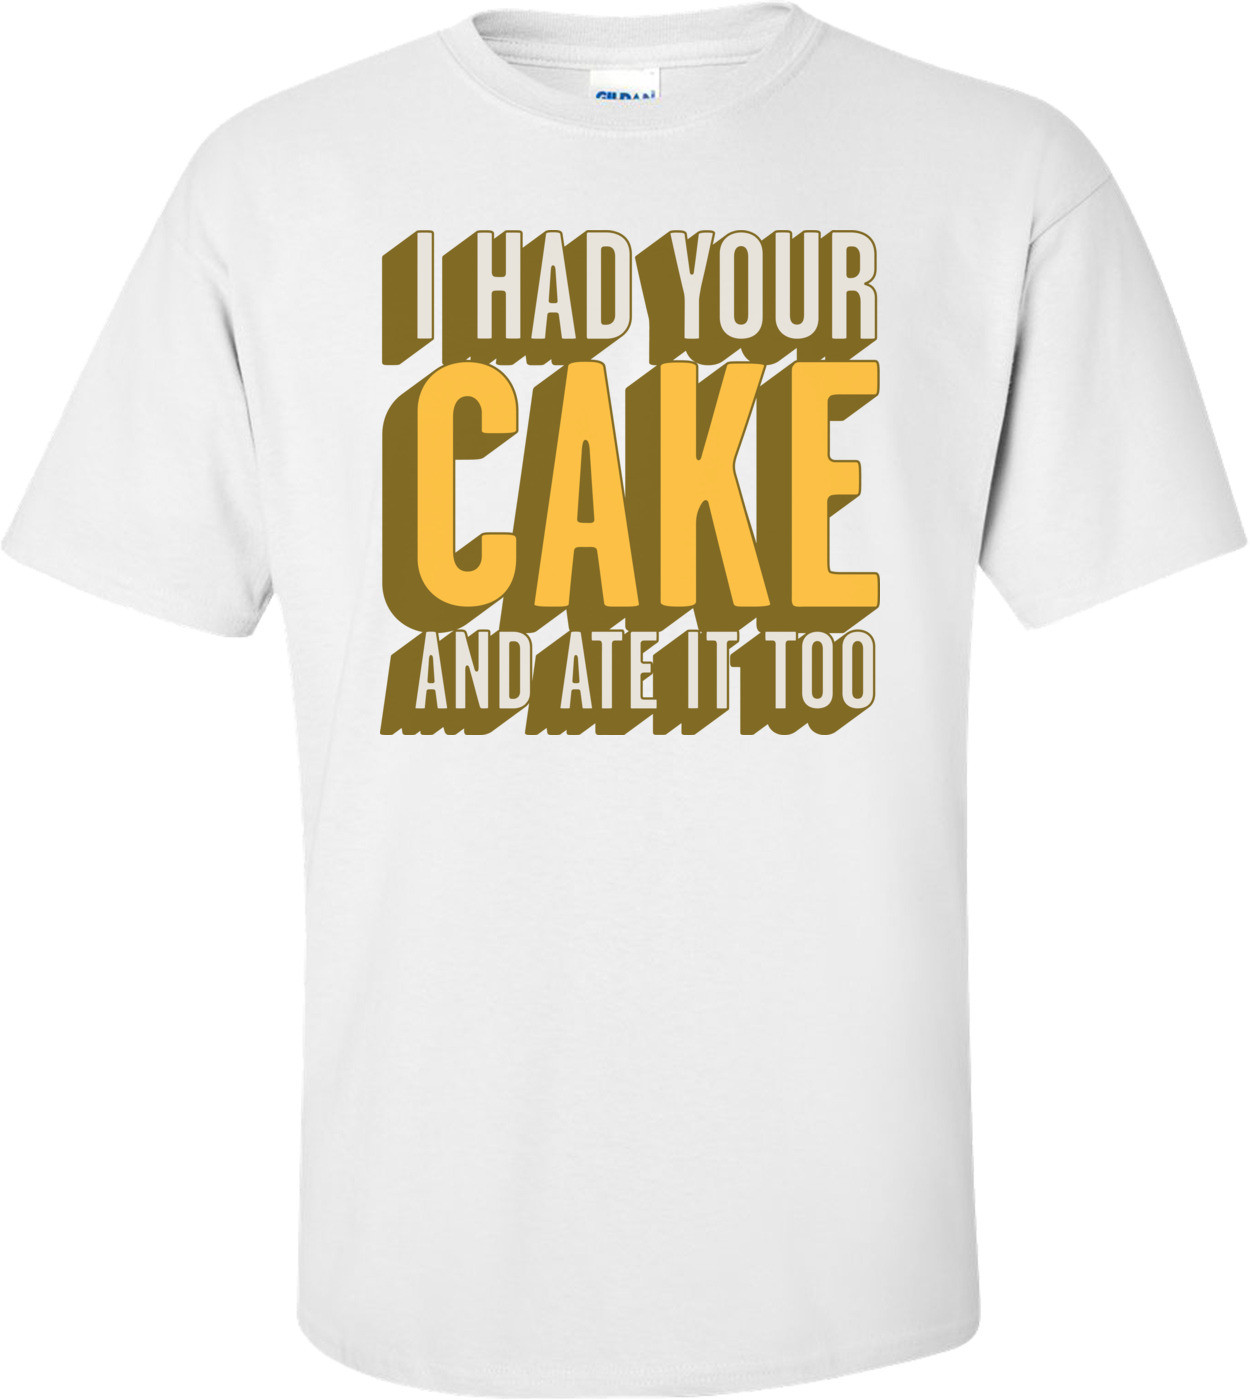 I Had Your Cake And Ate It Too T-shirt